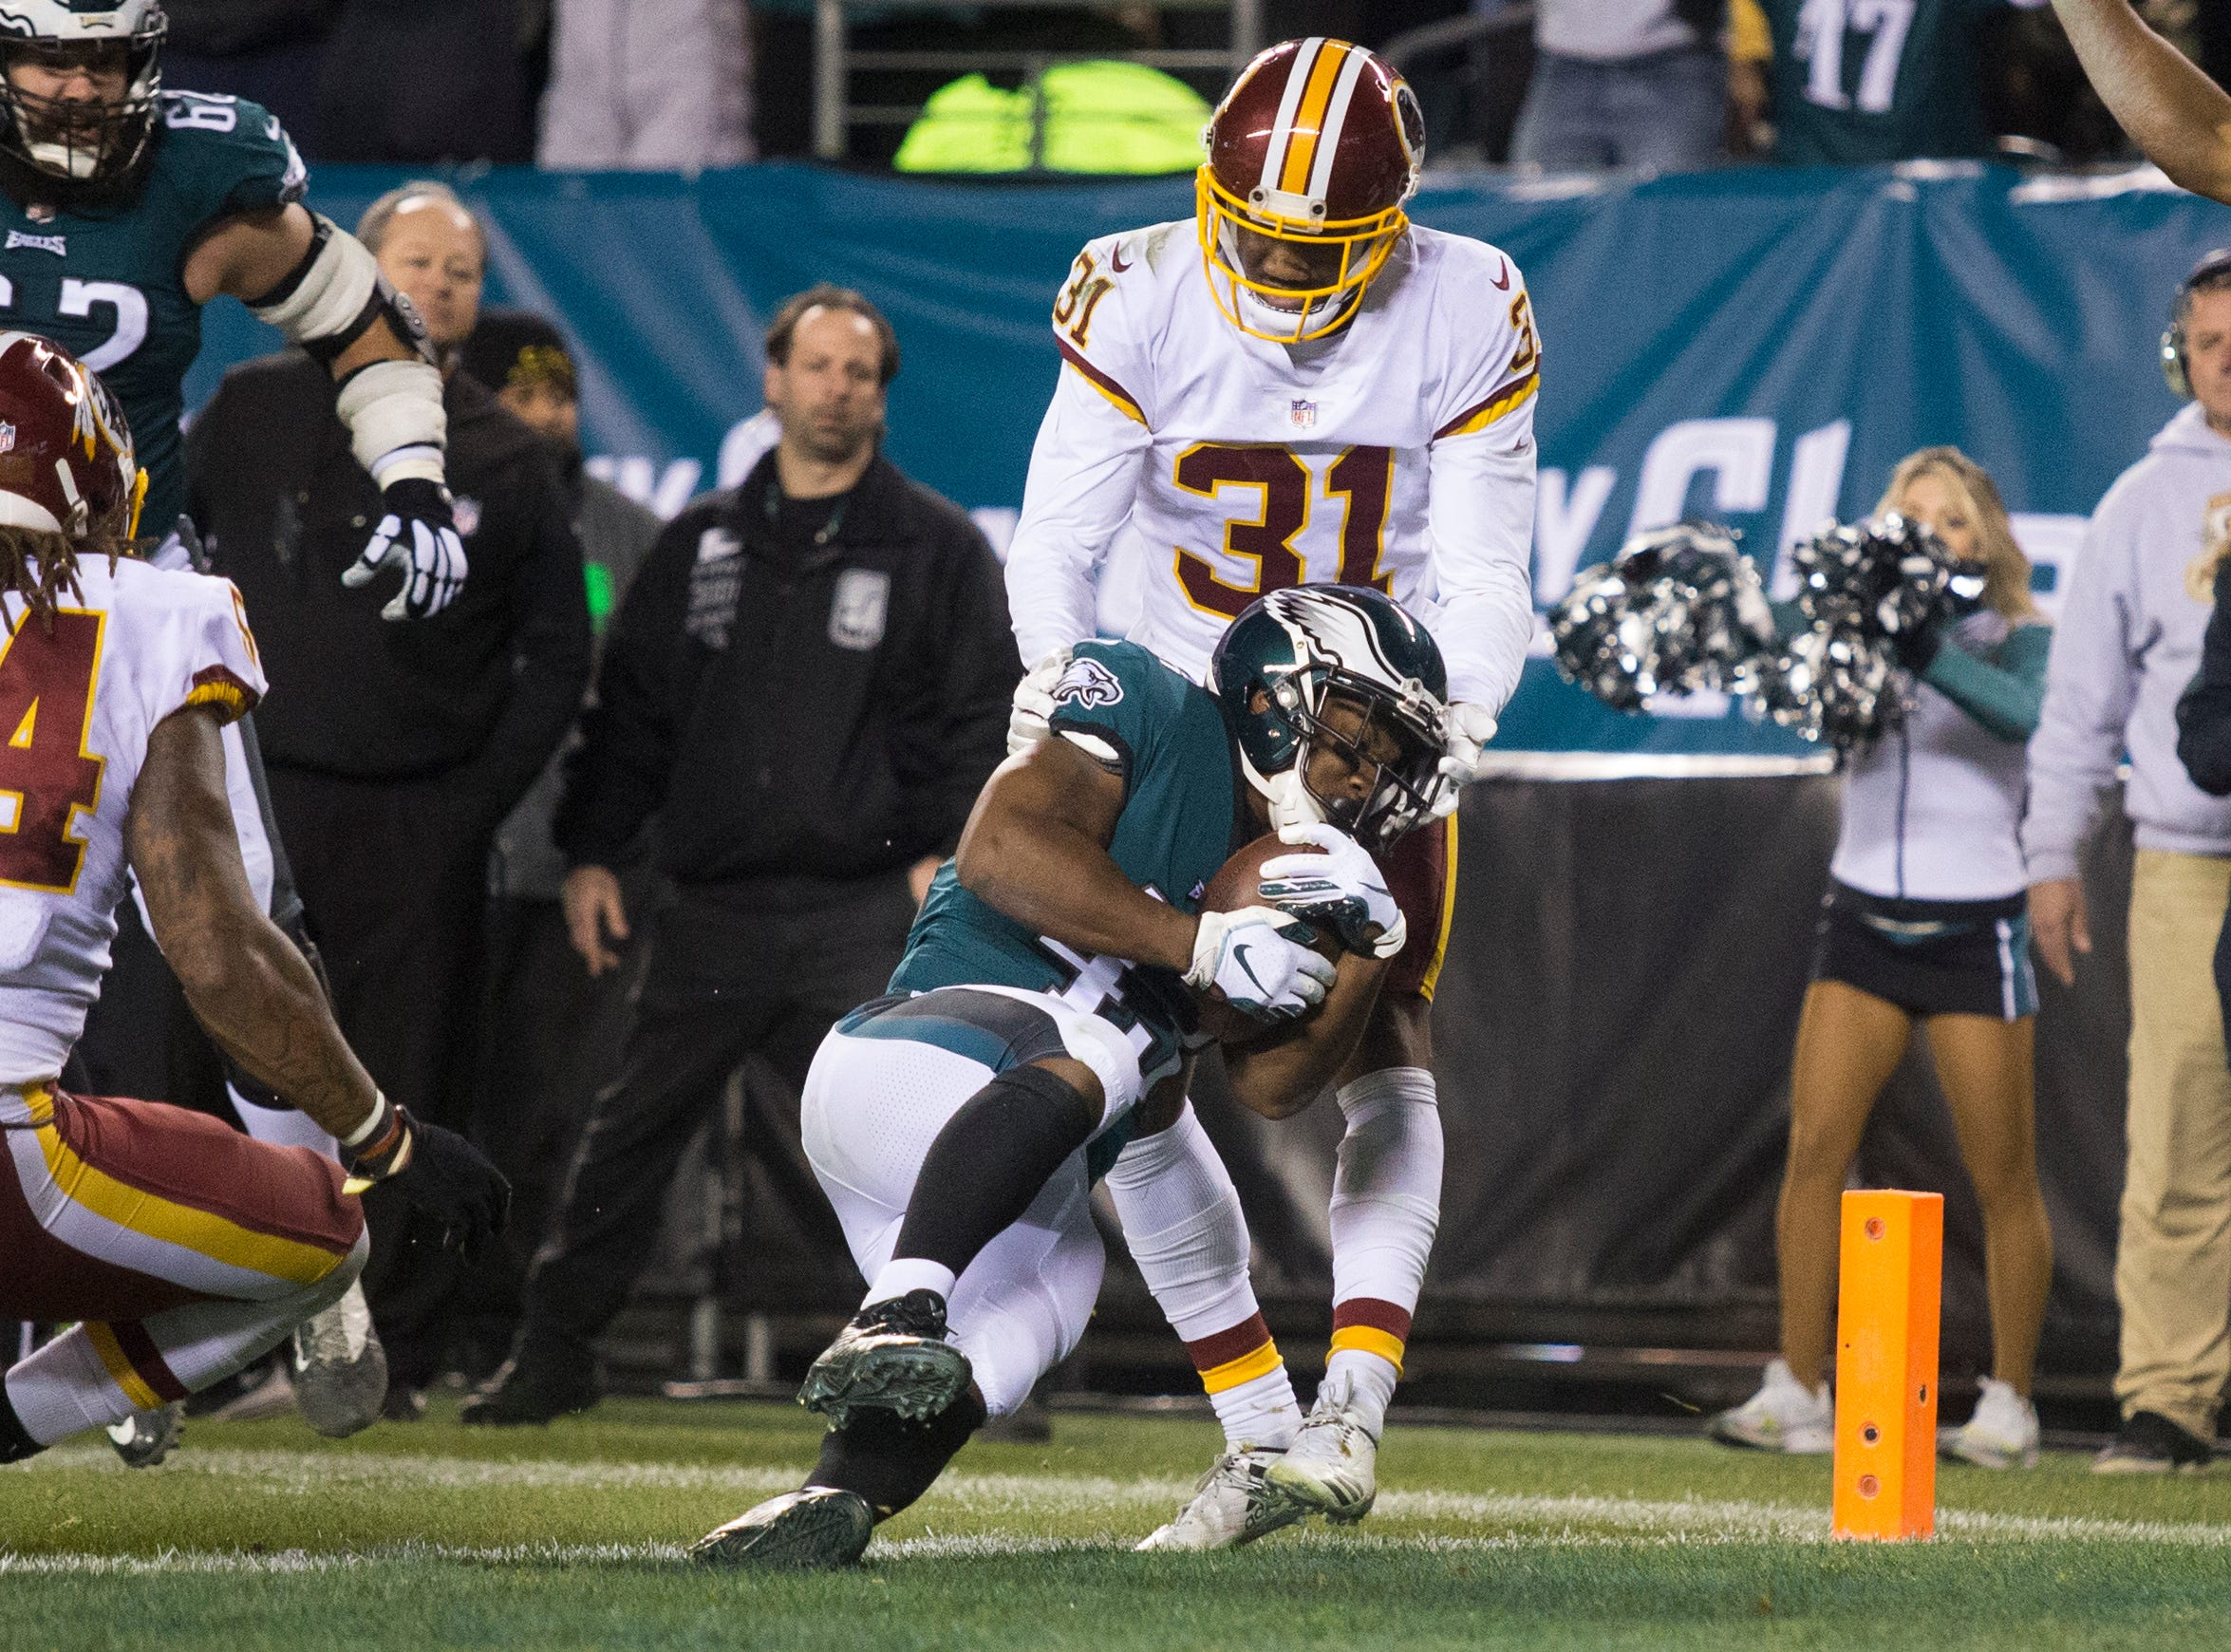 Eagles Darren Sproles (43) finds a way into the end zone Monday night against the Redskins.